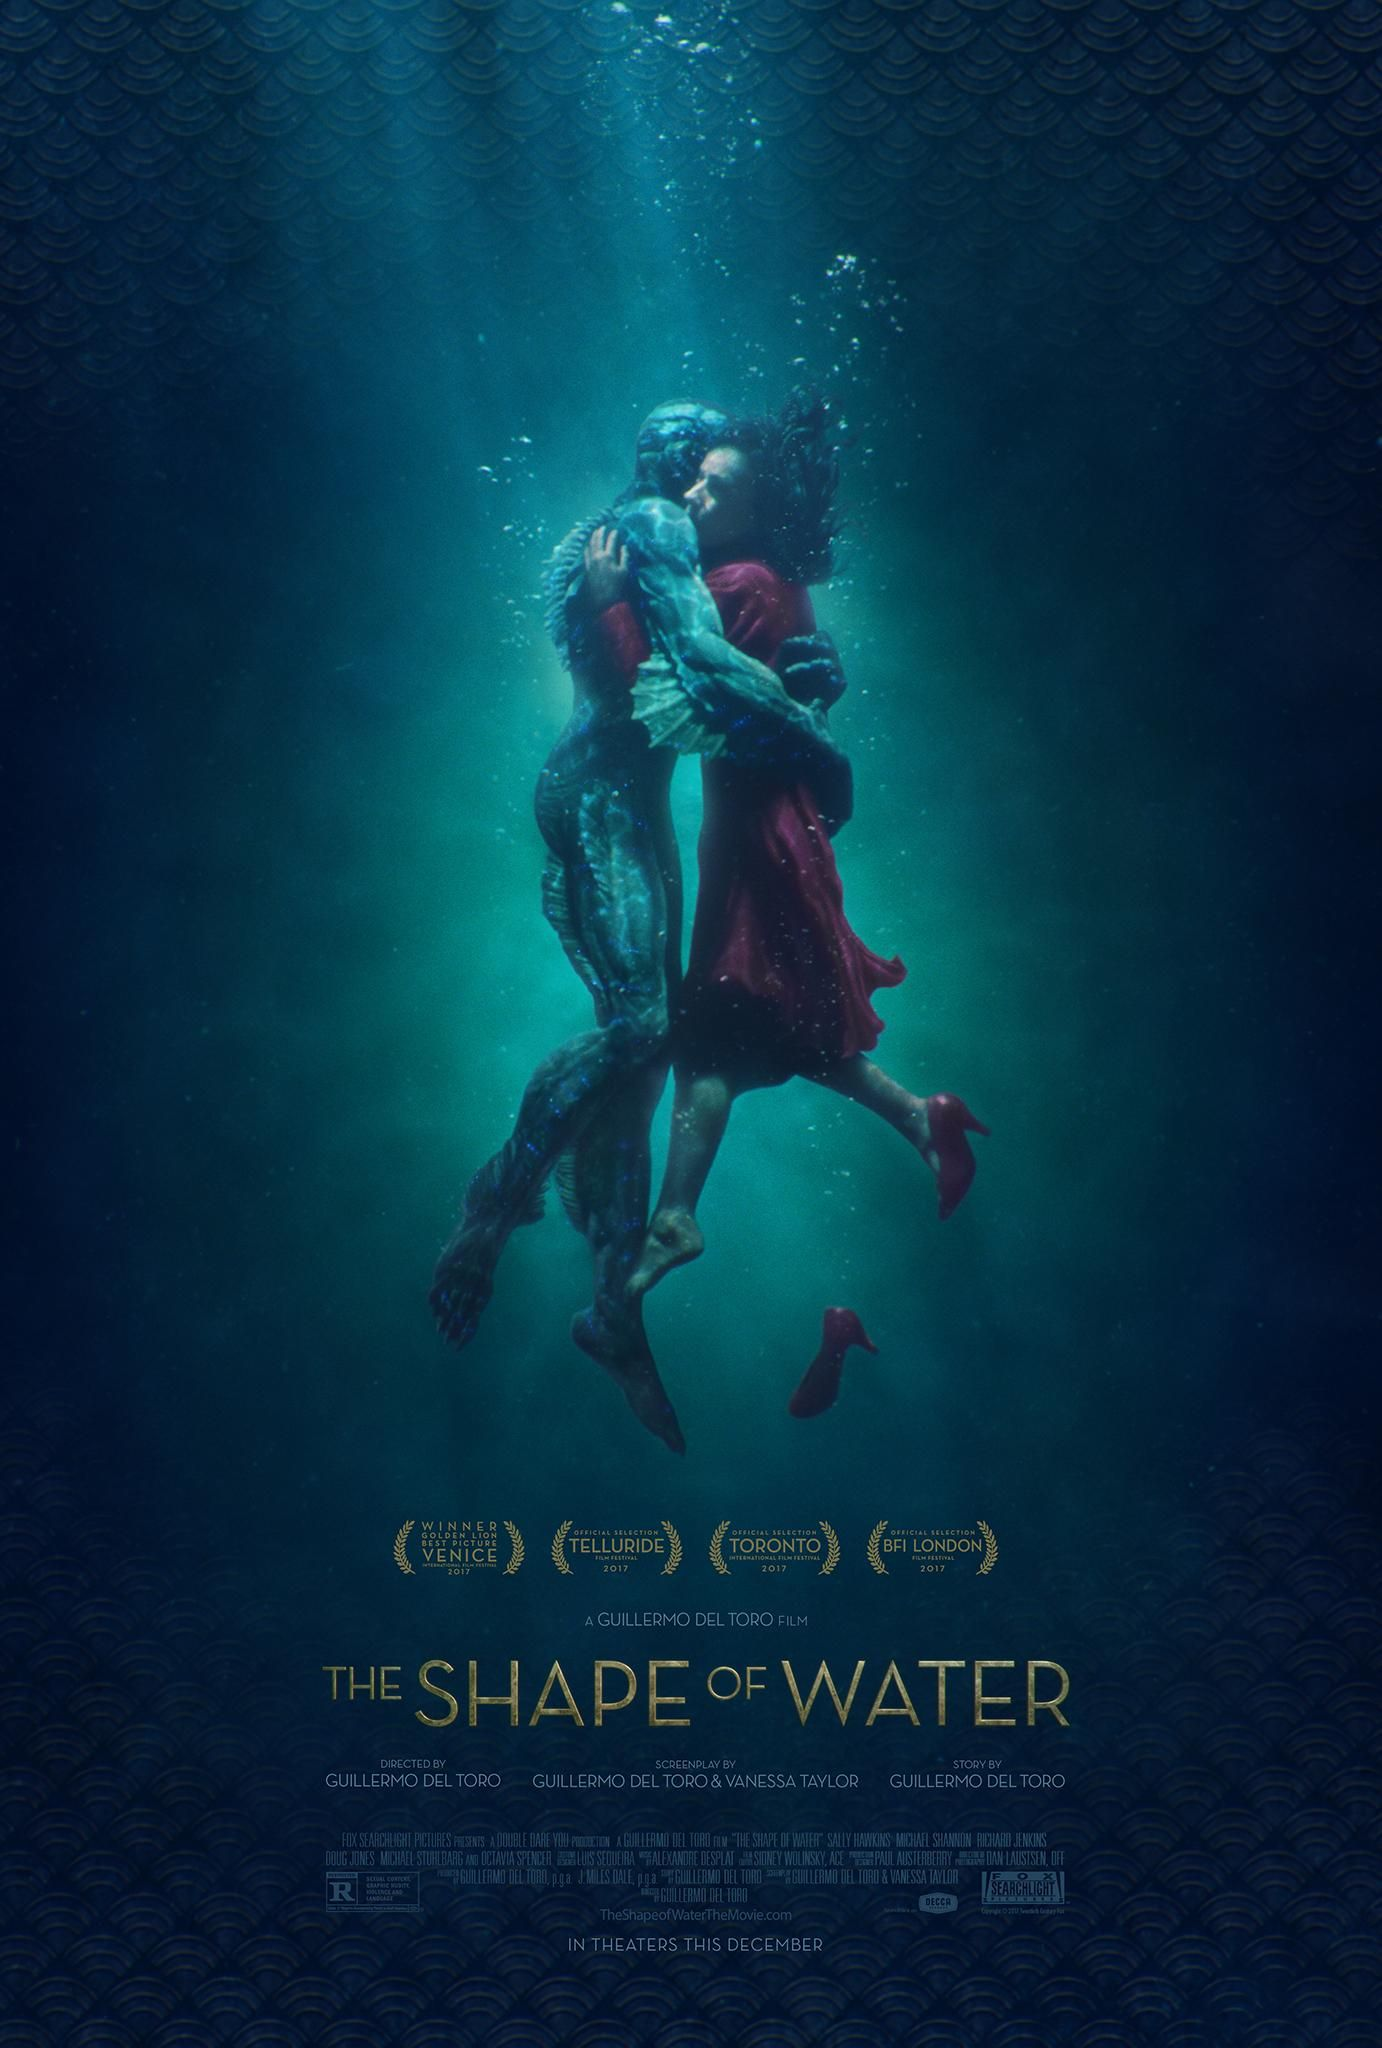 Guillermo del Toro on The Shape of Water and Beautiful